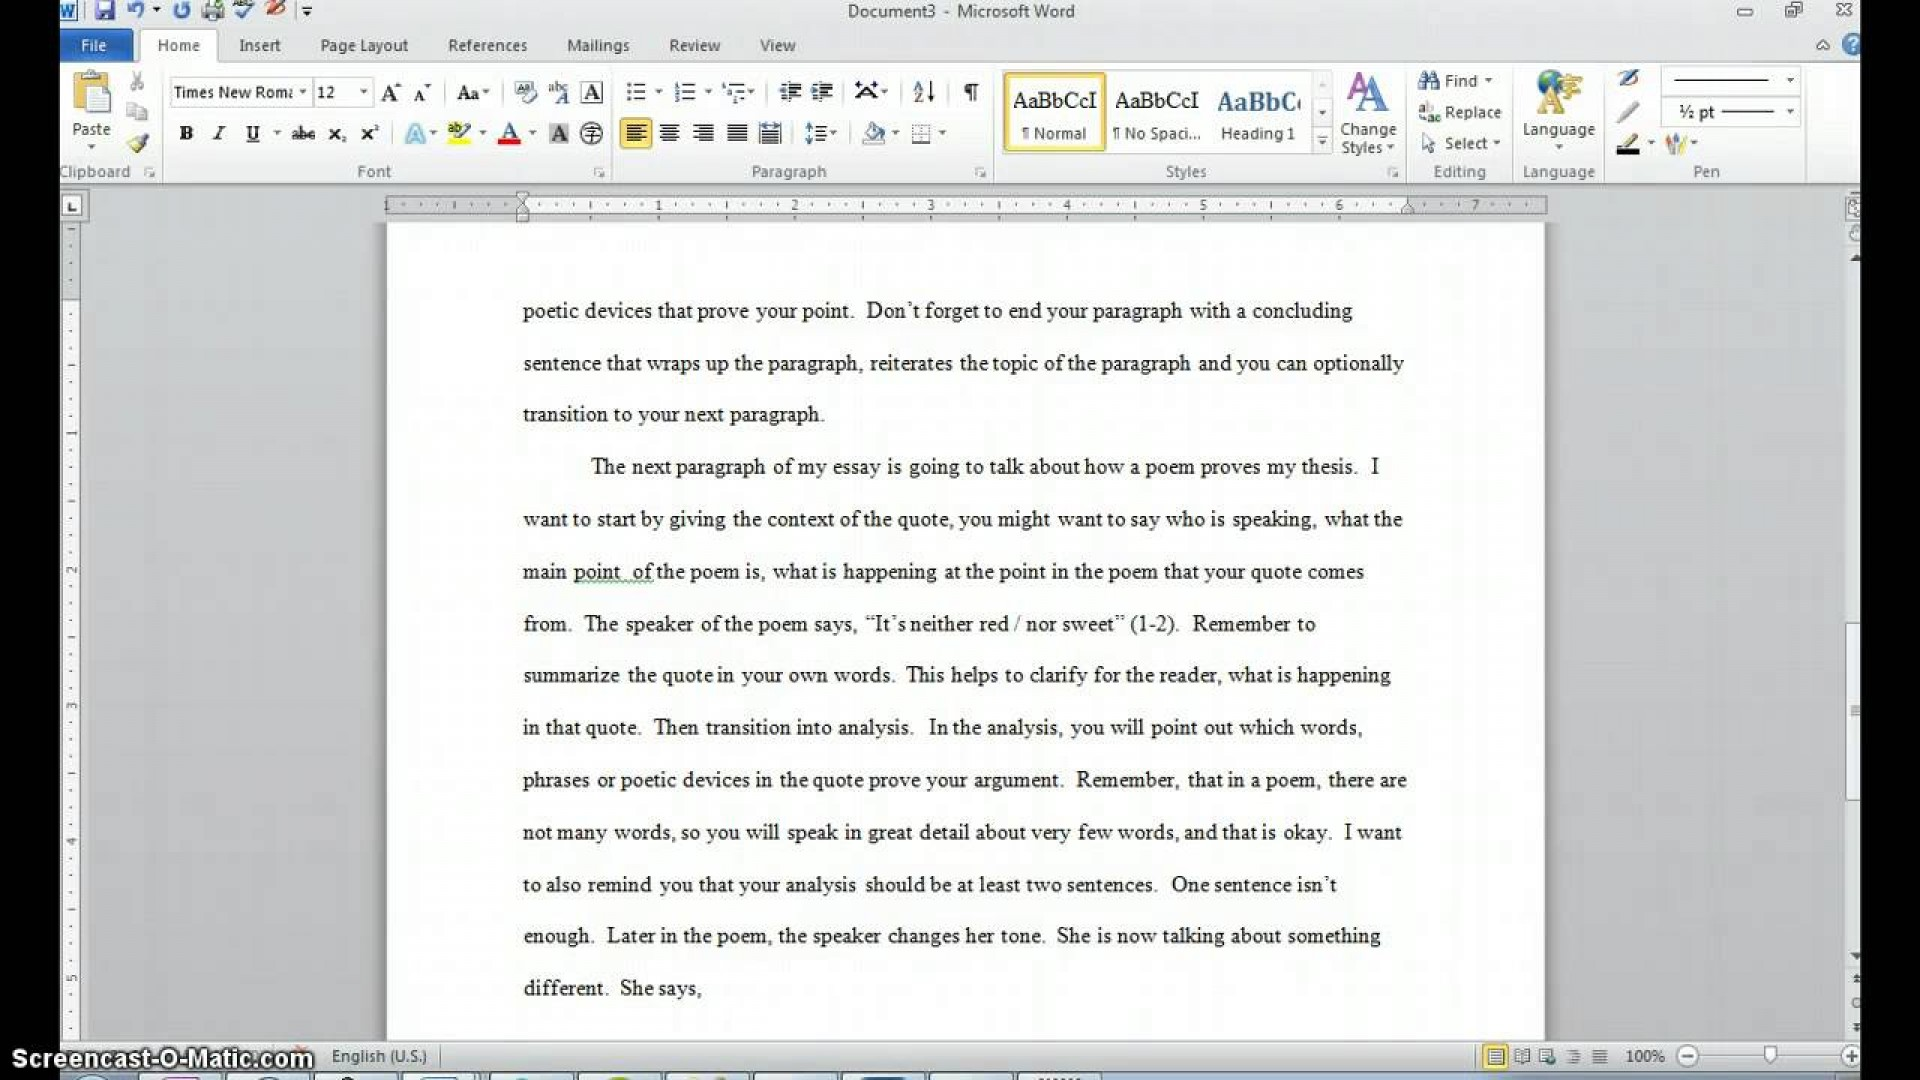 002 How To Quote Poem In An Essay Example Best A Title Apa 1920